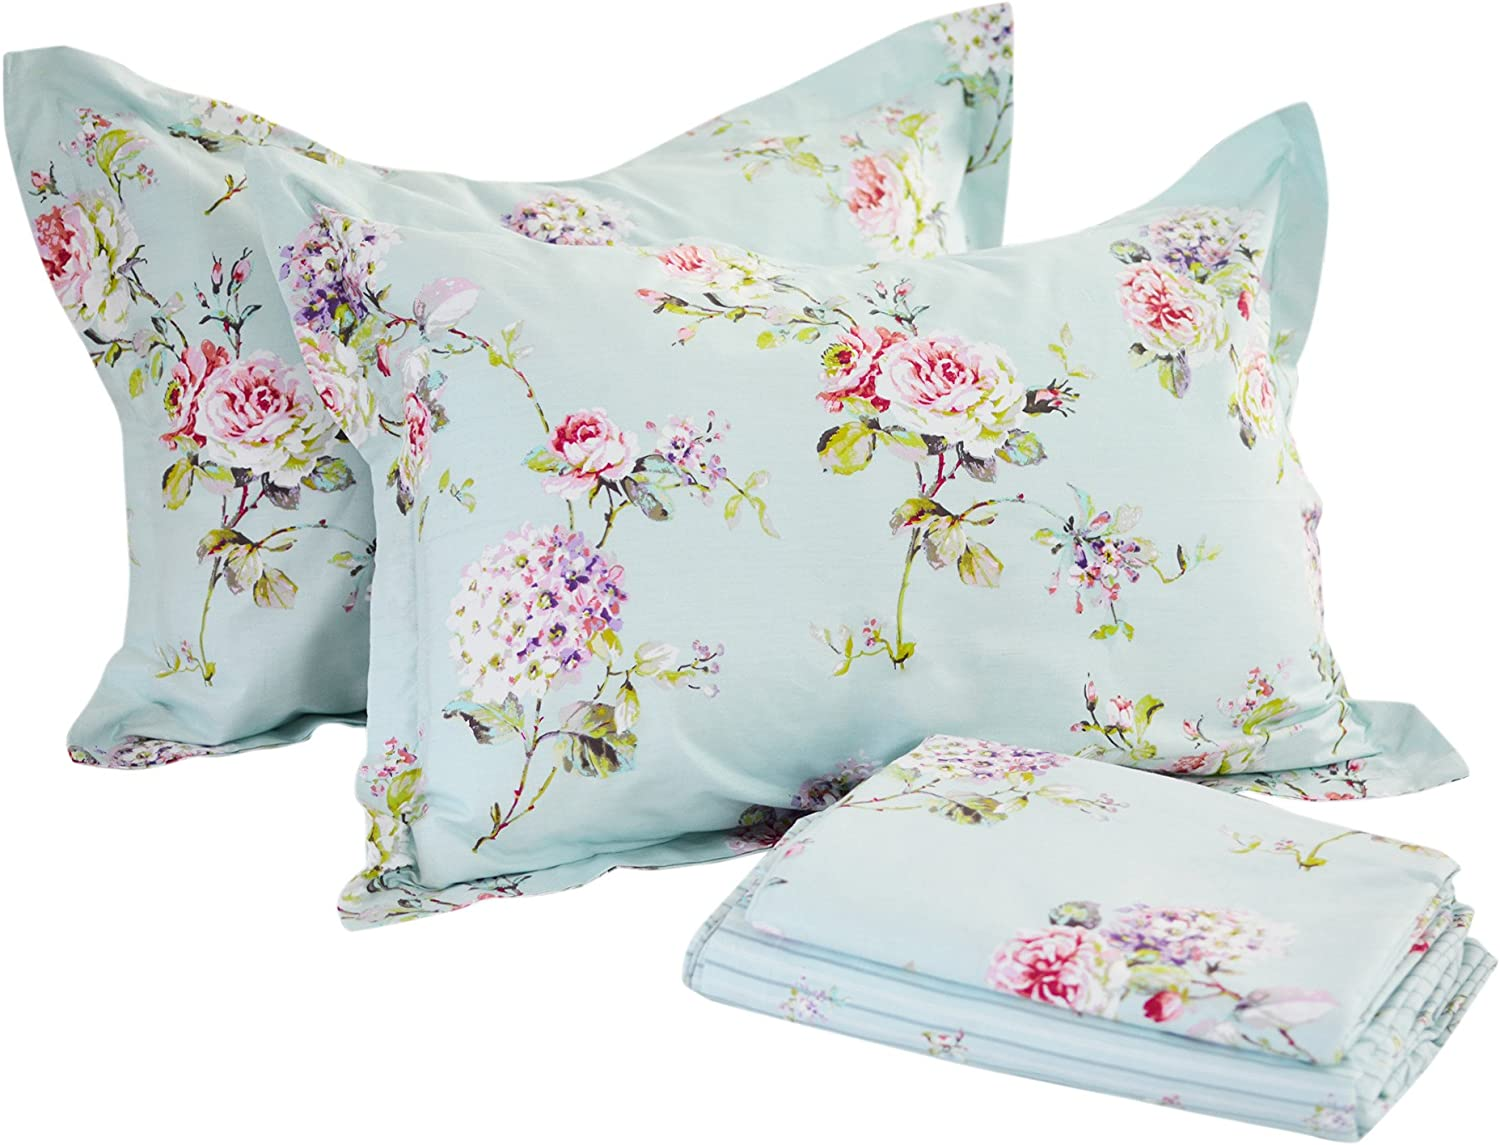 FADFAY Sheet Set Cal King Farmhouse Bedding pink and Hydrangea 100% Cotton Hypoallergenic bluee Floral Deep Pocket Fitted Sheet 4-Pieces Cal King